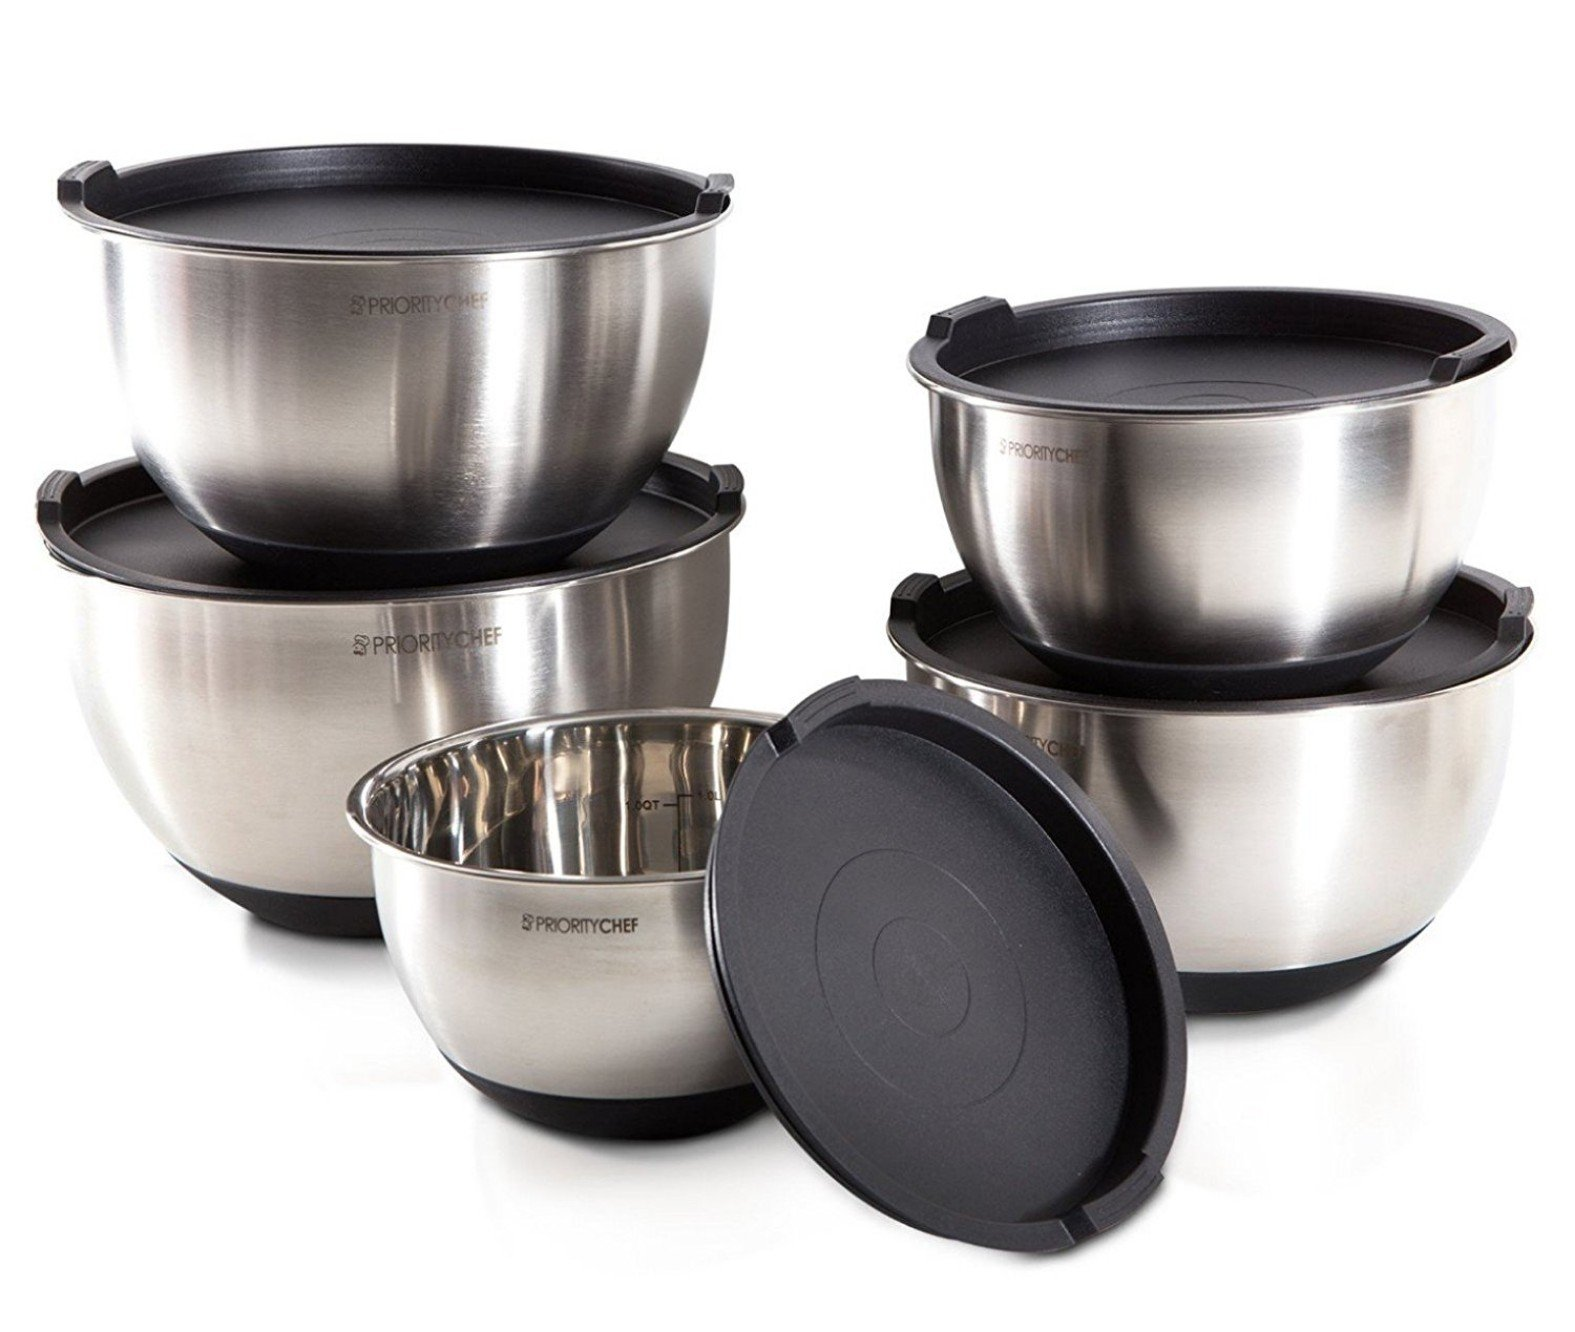 PriorityChef 5 Piece Mixing Bowls With Lids, Large 5 Quart Capacity, Stainless Steel, Non Slip Silicone Bottom, Stackable For Minimal Storage, Black Base by Priority Chef